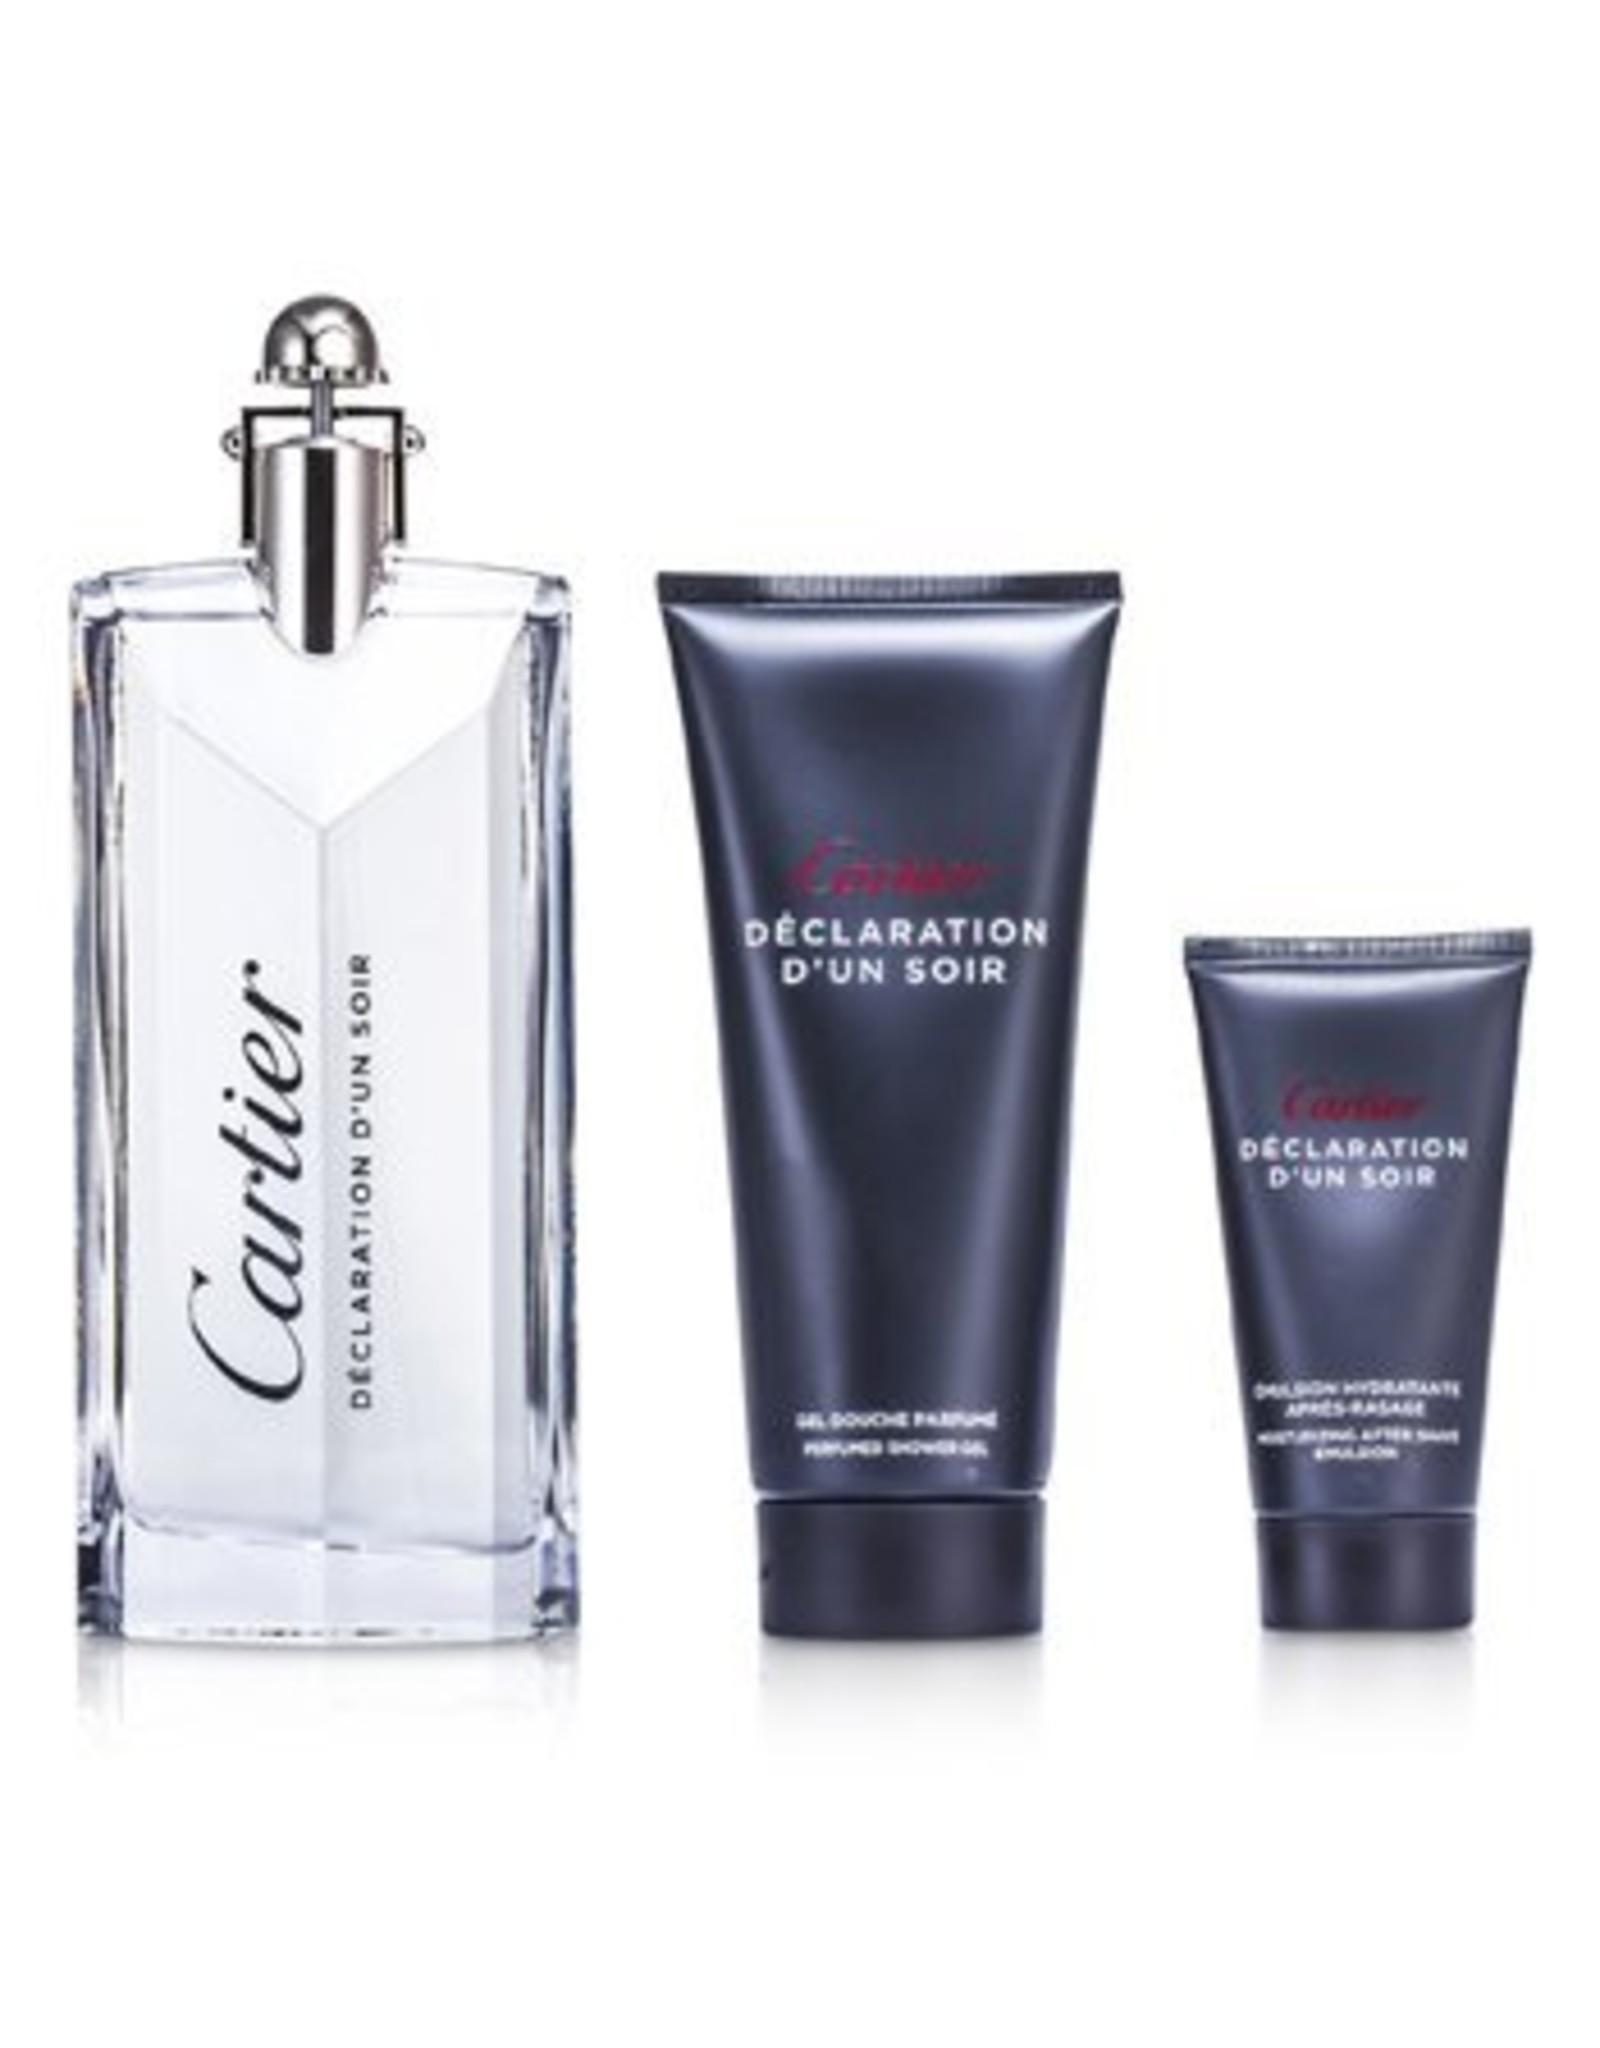 CARTIER CARTIER DECLARATION D'UN SOIR 3pcs Set